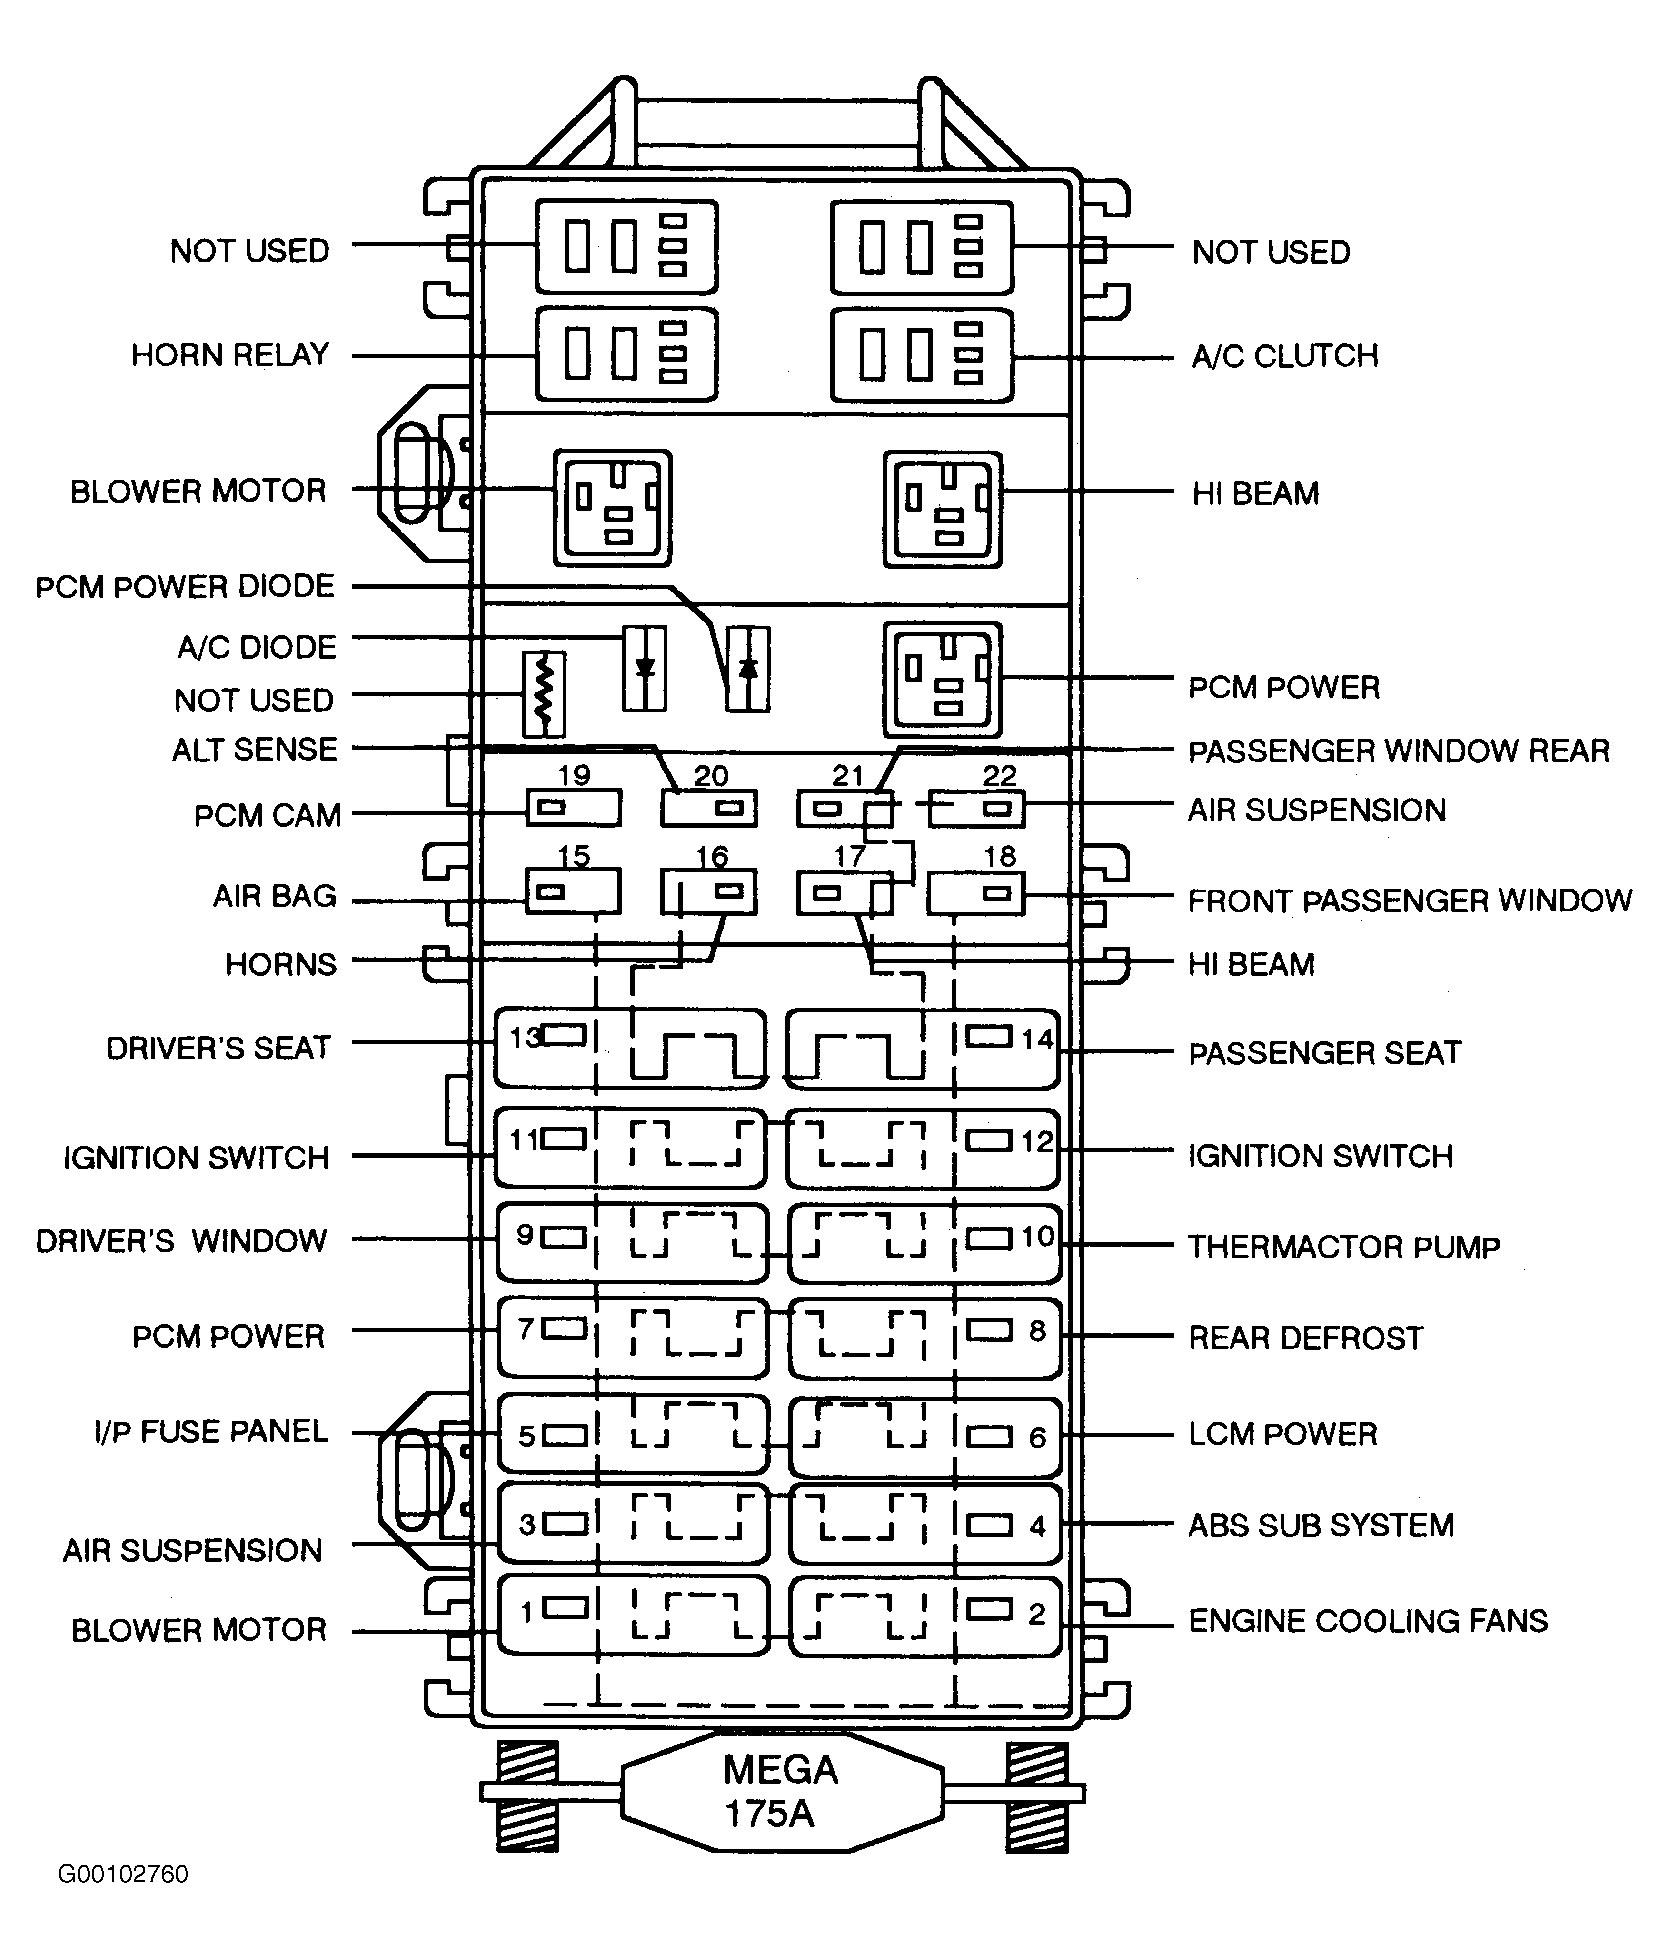 94 Lincoln Town Car Fuse Diagram | Wiring Diagram on